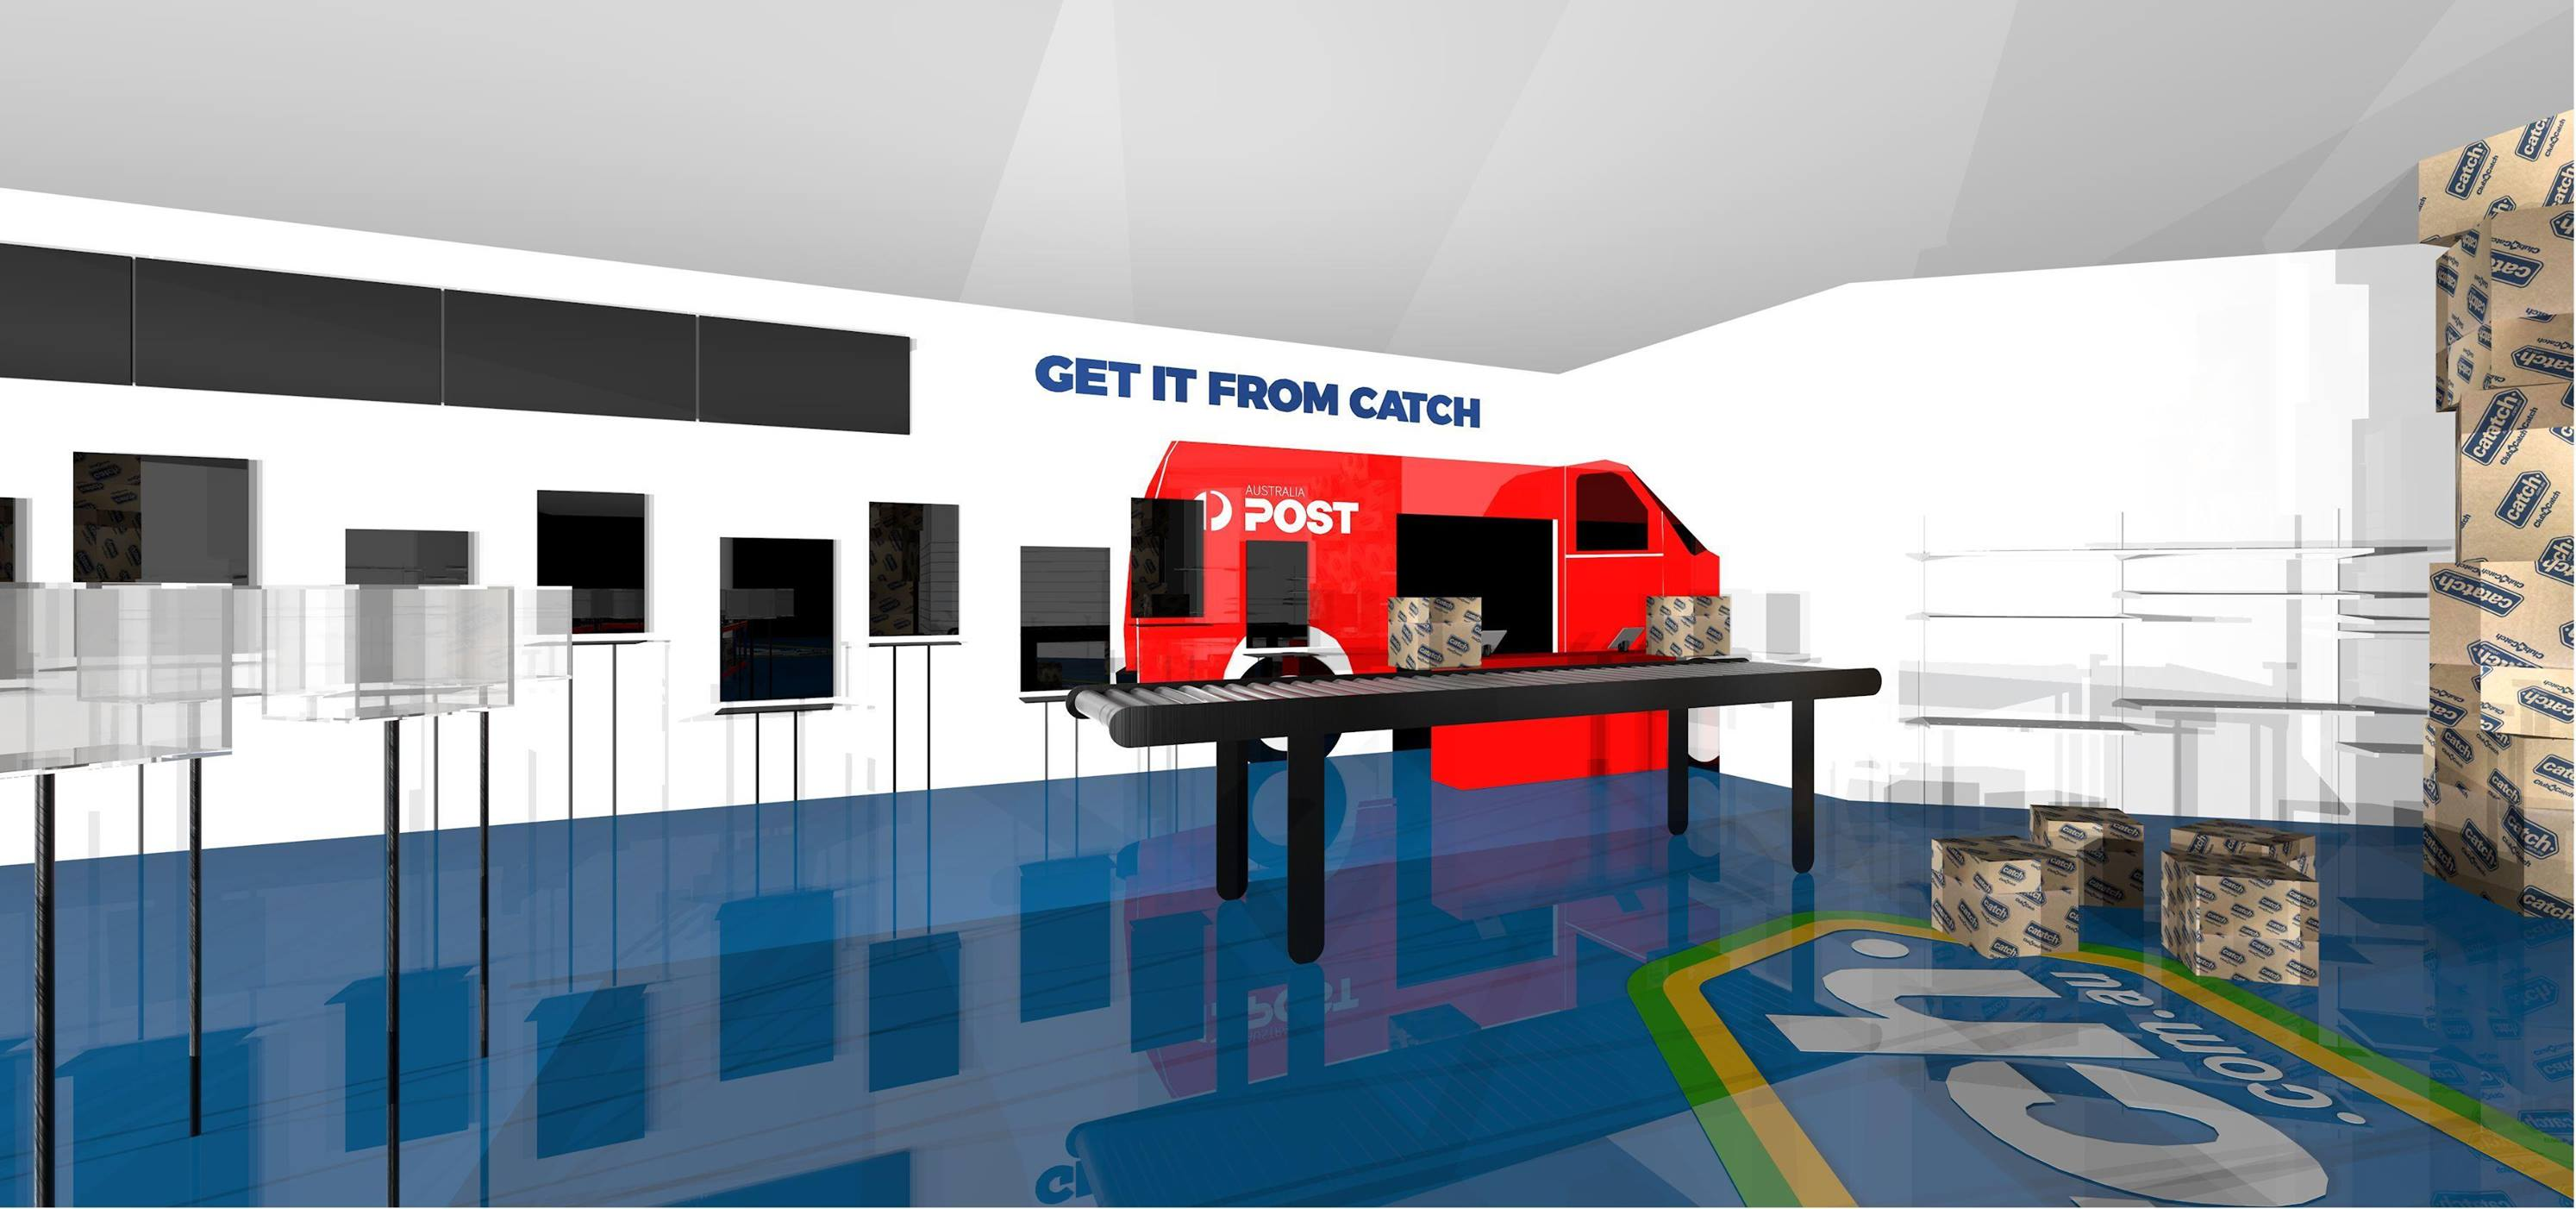 Catch Group Pop-up Shop Design for Chadstone Shopping Centre